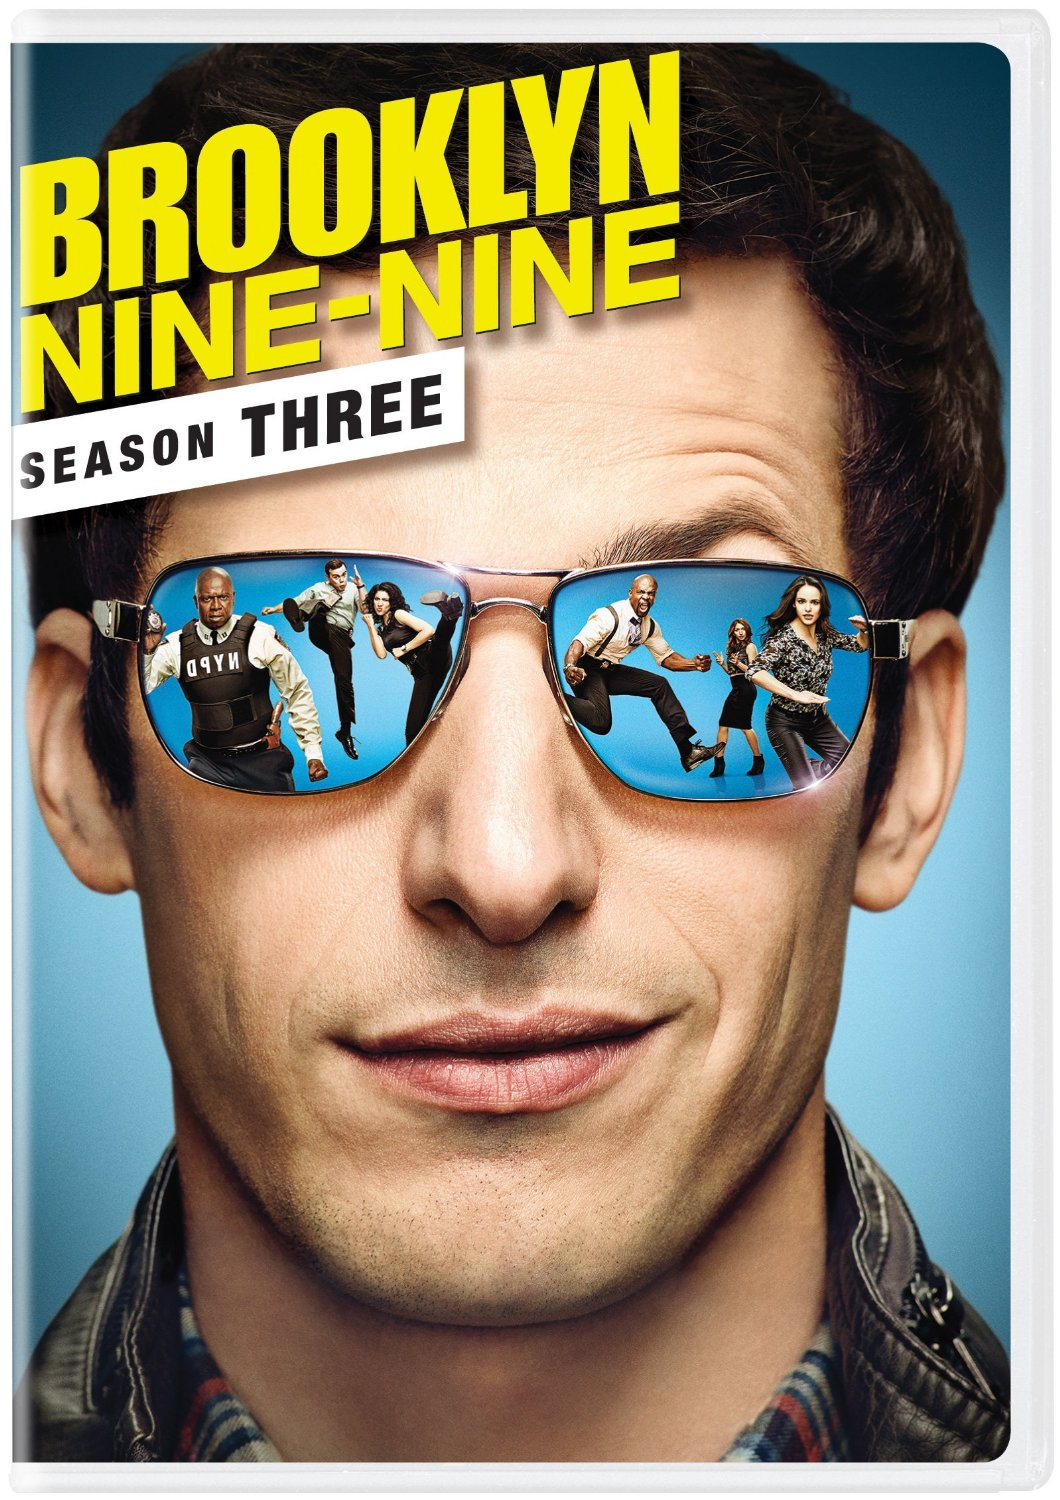 Brooklyn Nine-Nine [TV Series] - Brooklyn Nine-Nine: Season Three